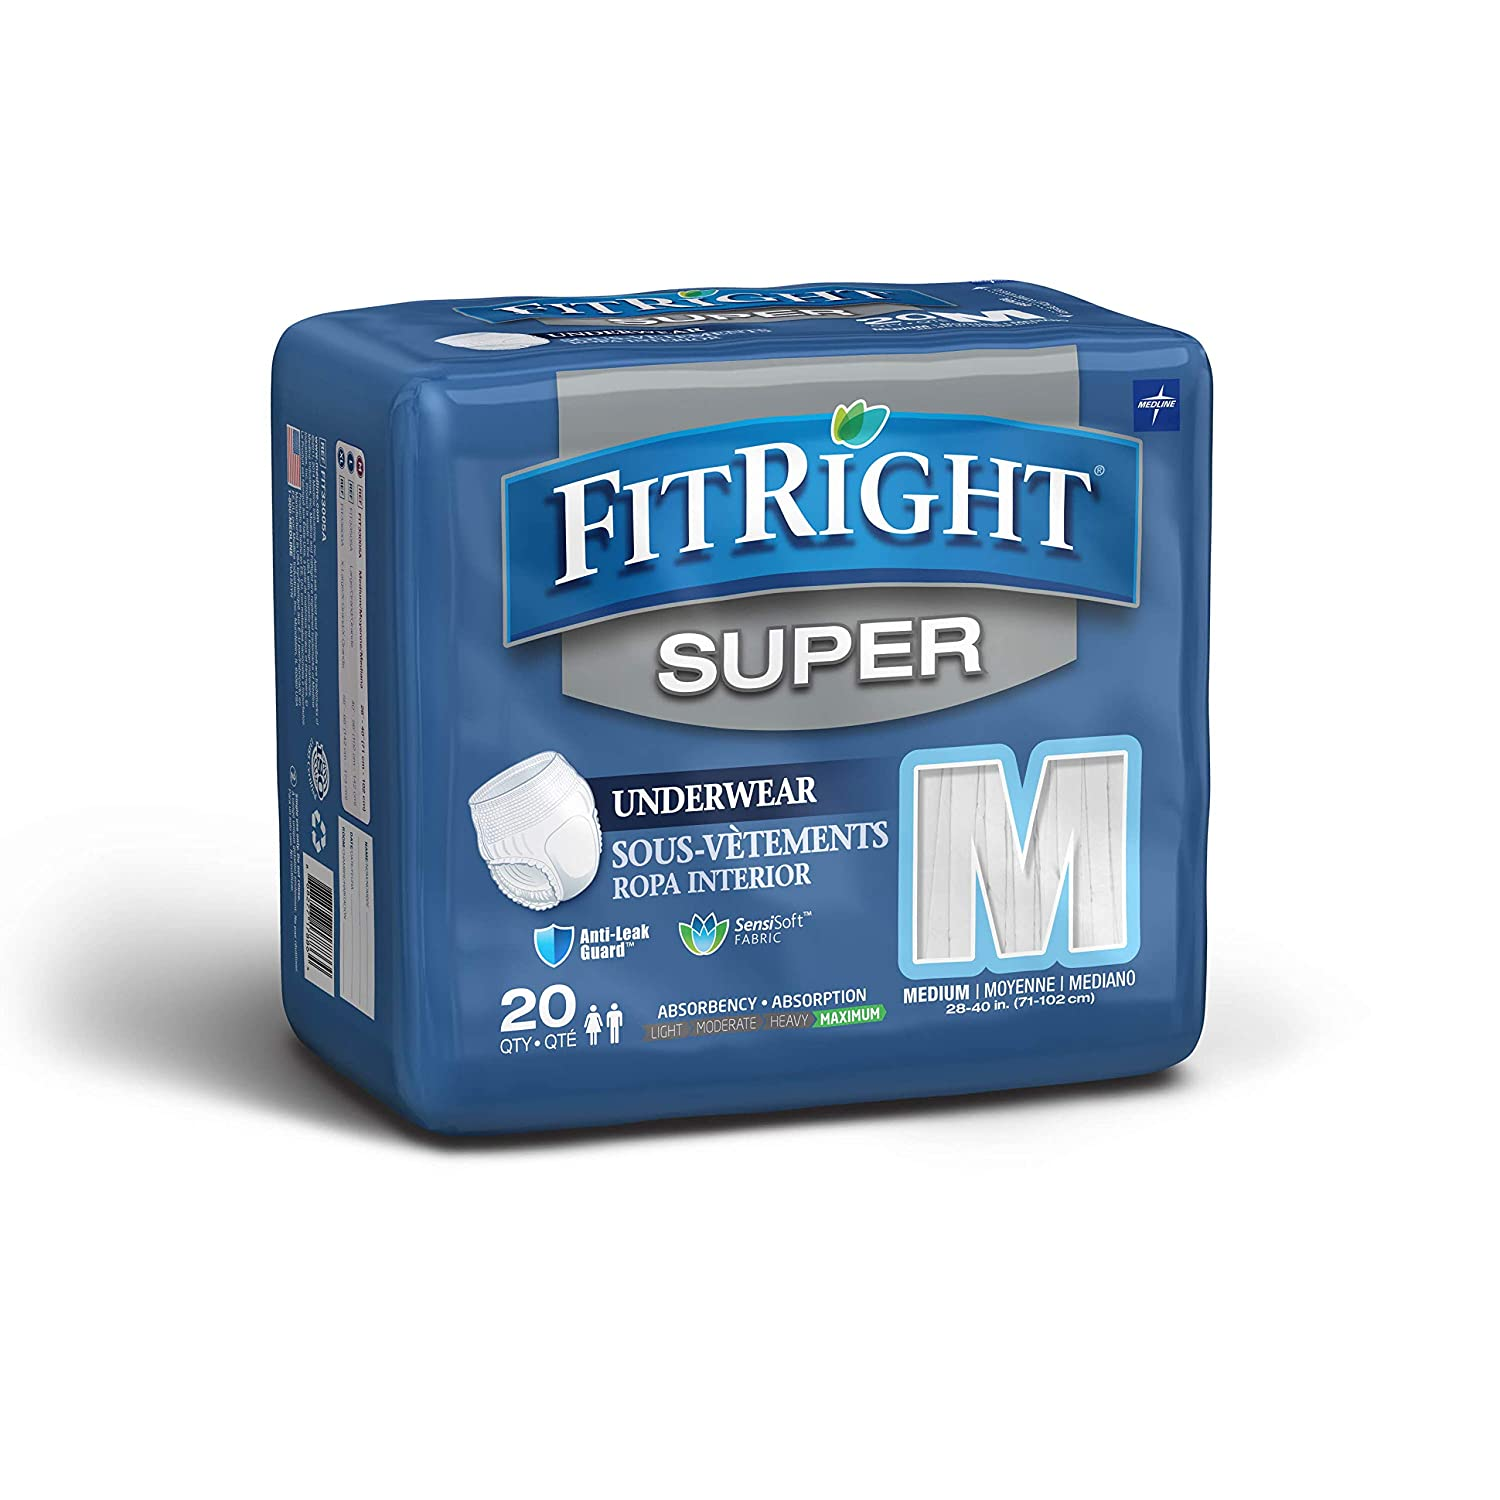 Fitright Super Adult Incontinence Underwear Maximum Underpad Sensi Absorbency Medium 28 40 4 Packs Of 20 80 Total Industrial Scientific